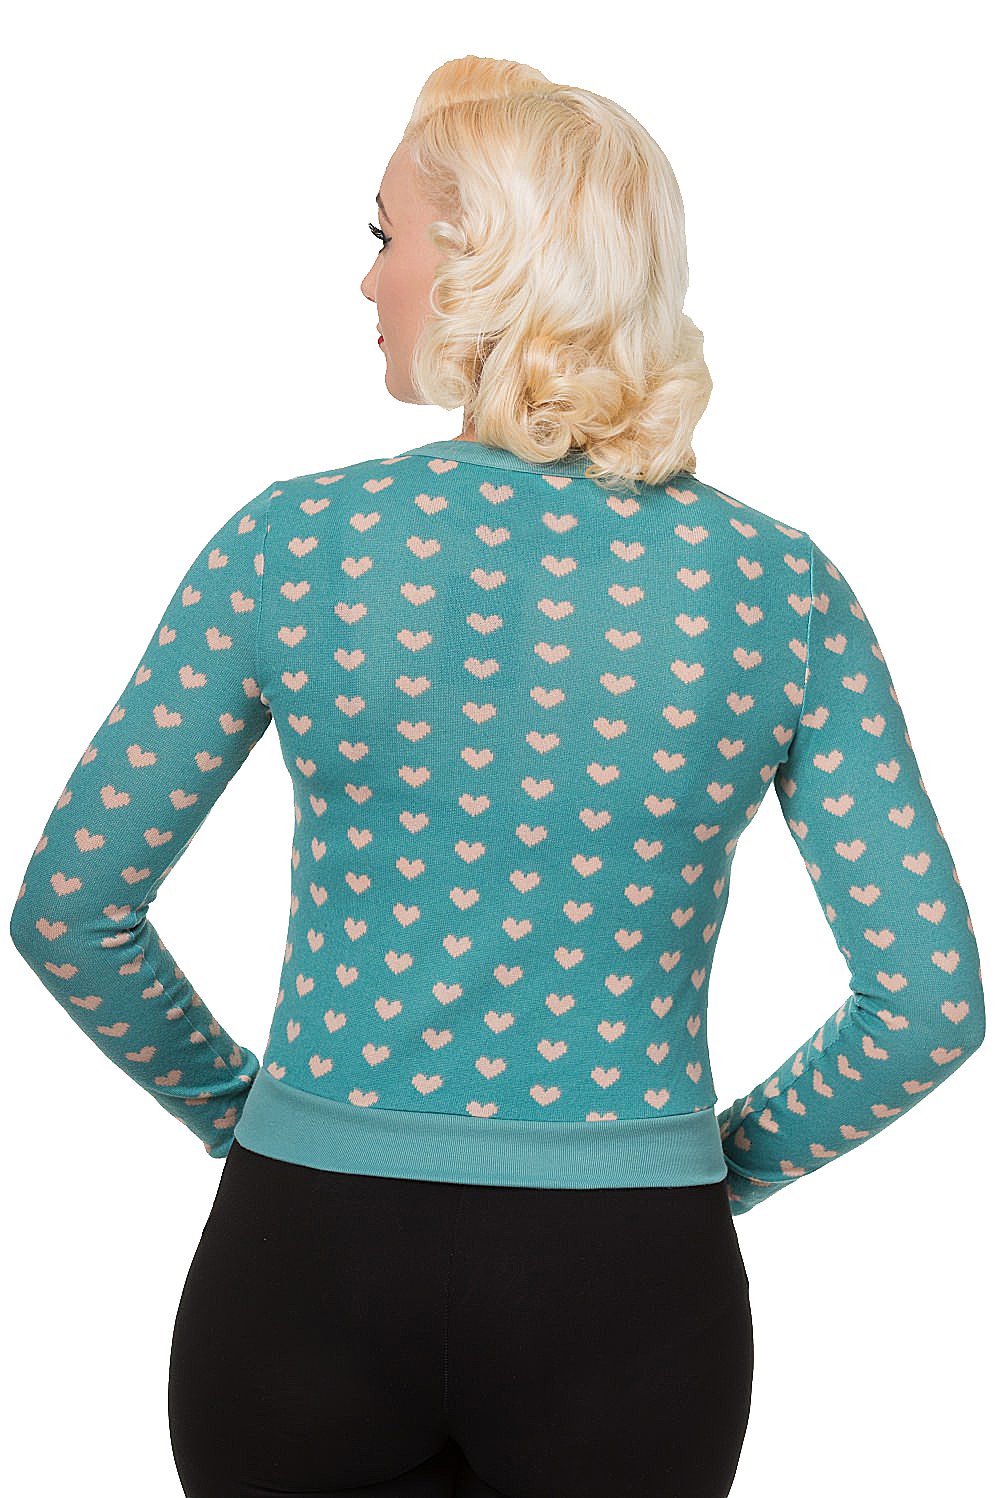 Banned Mint Blue Lovehearts Cardigan